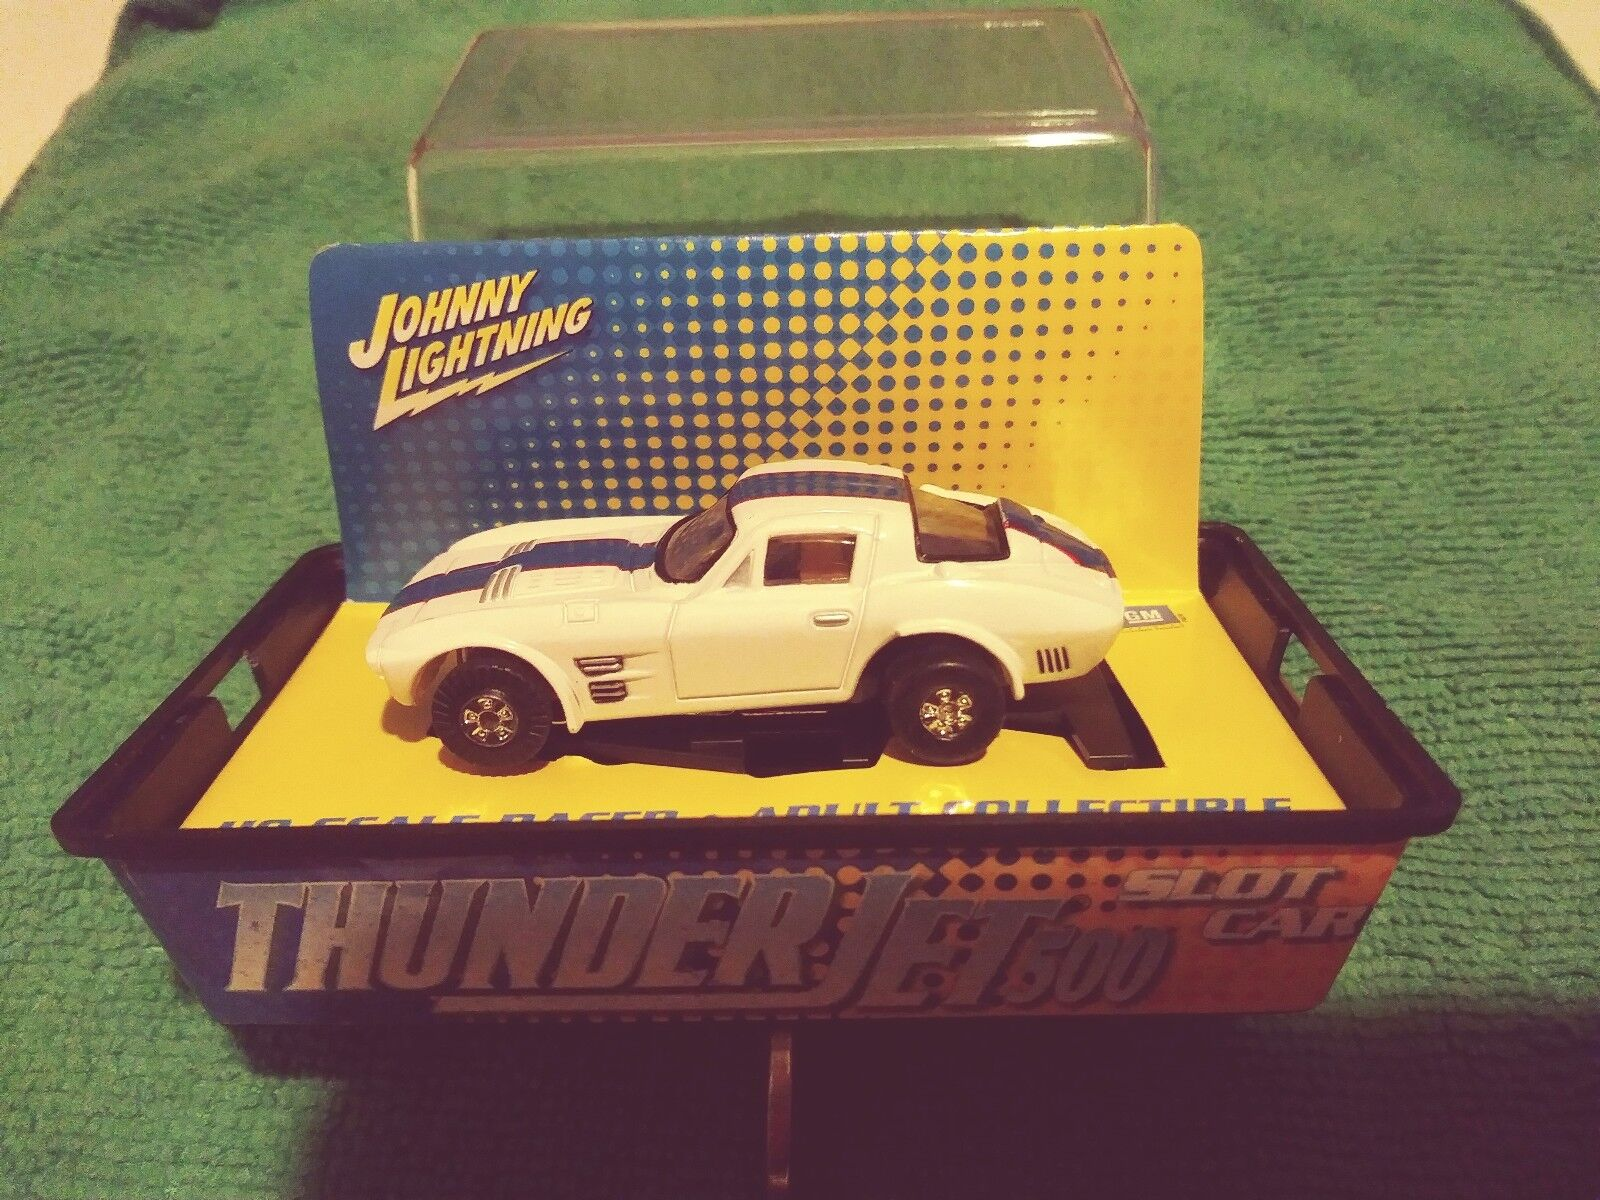 JOHNNY LIGHTNING TJET 500 SLOT CAR CHEVY CORVETTE GRAN SPORT WHITE W/BLUE STRIPE